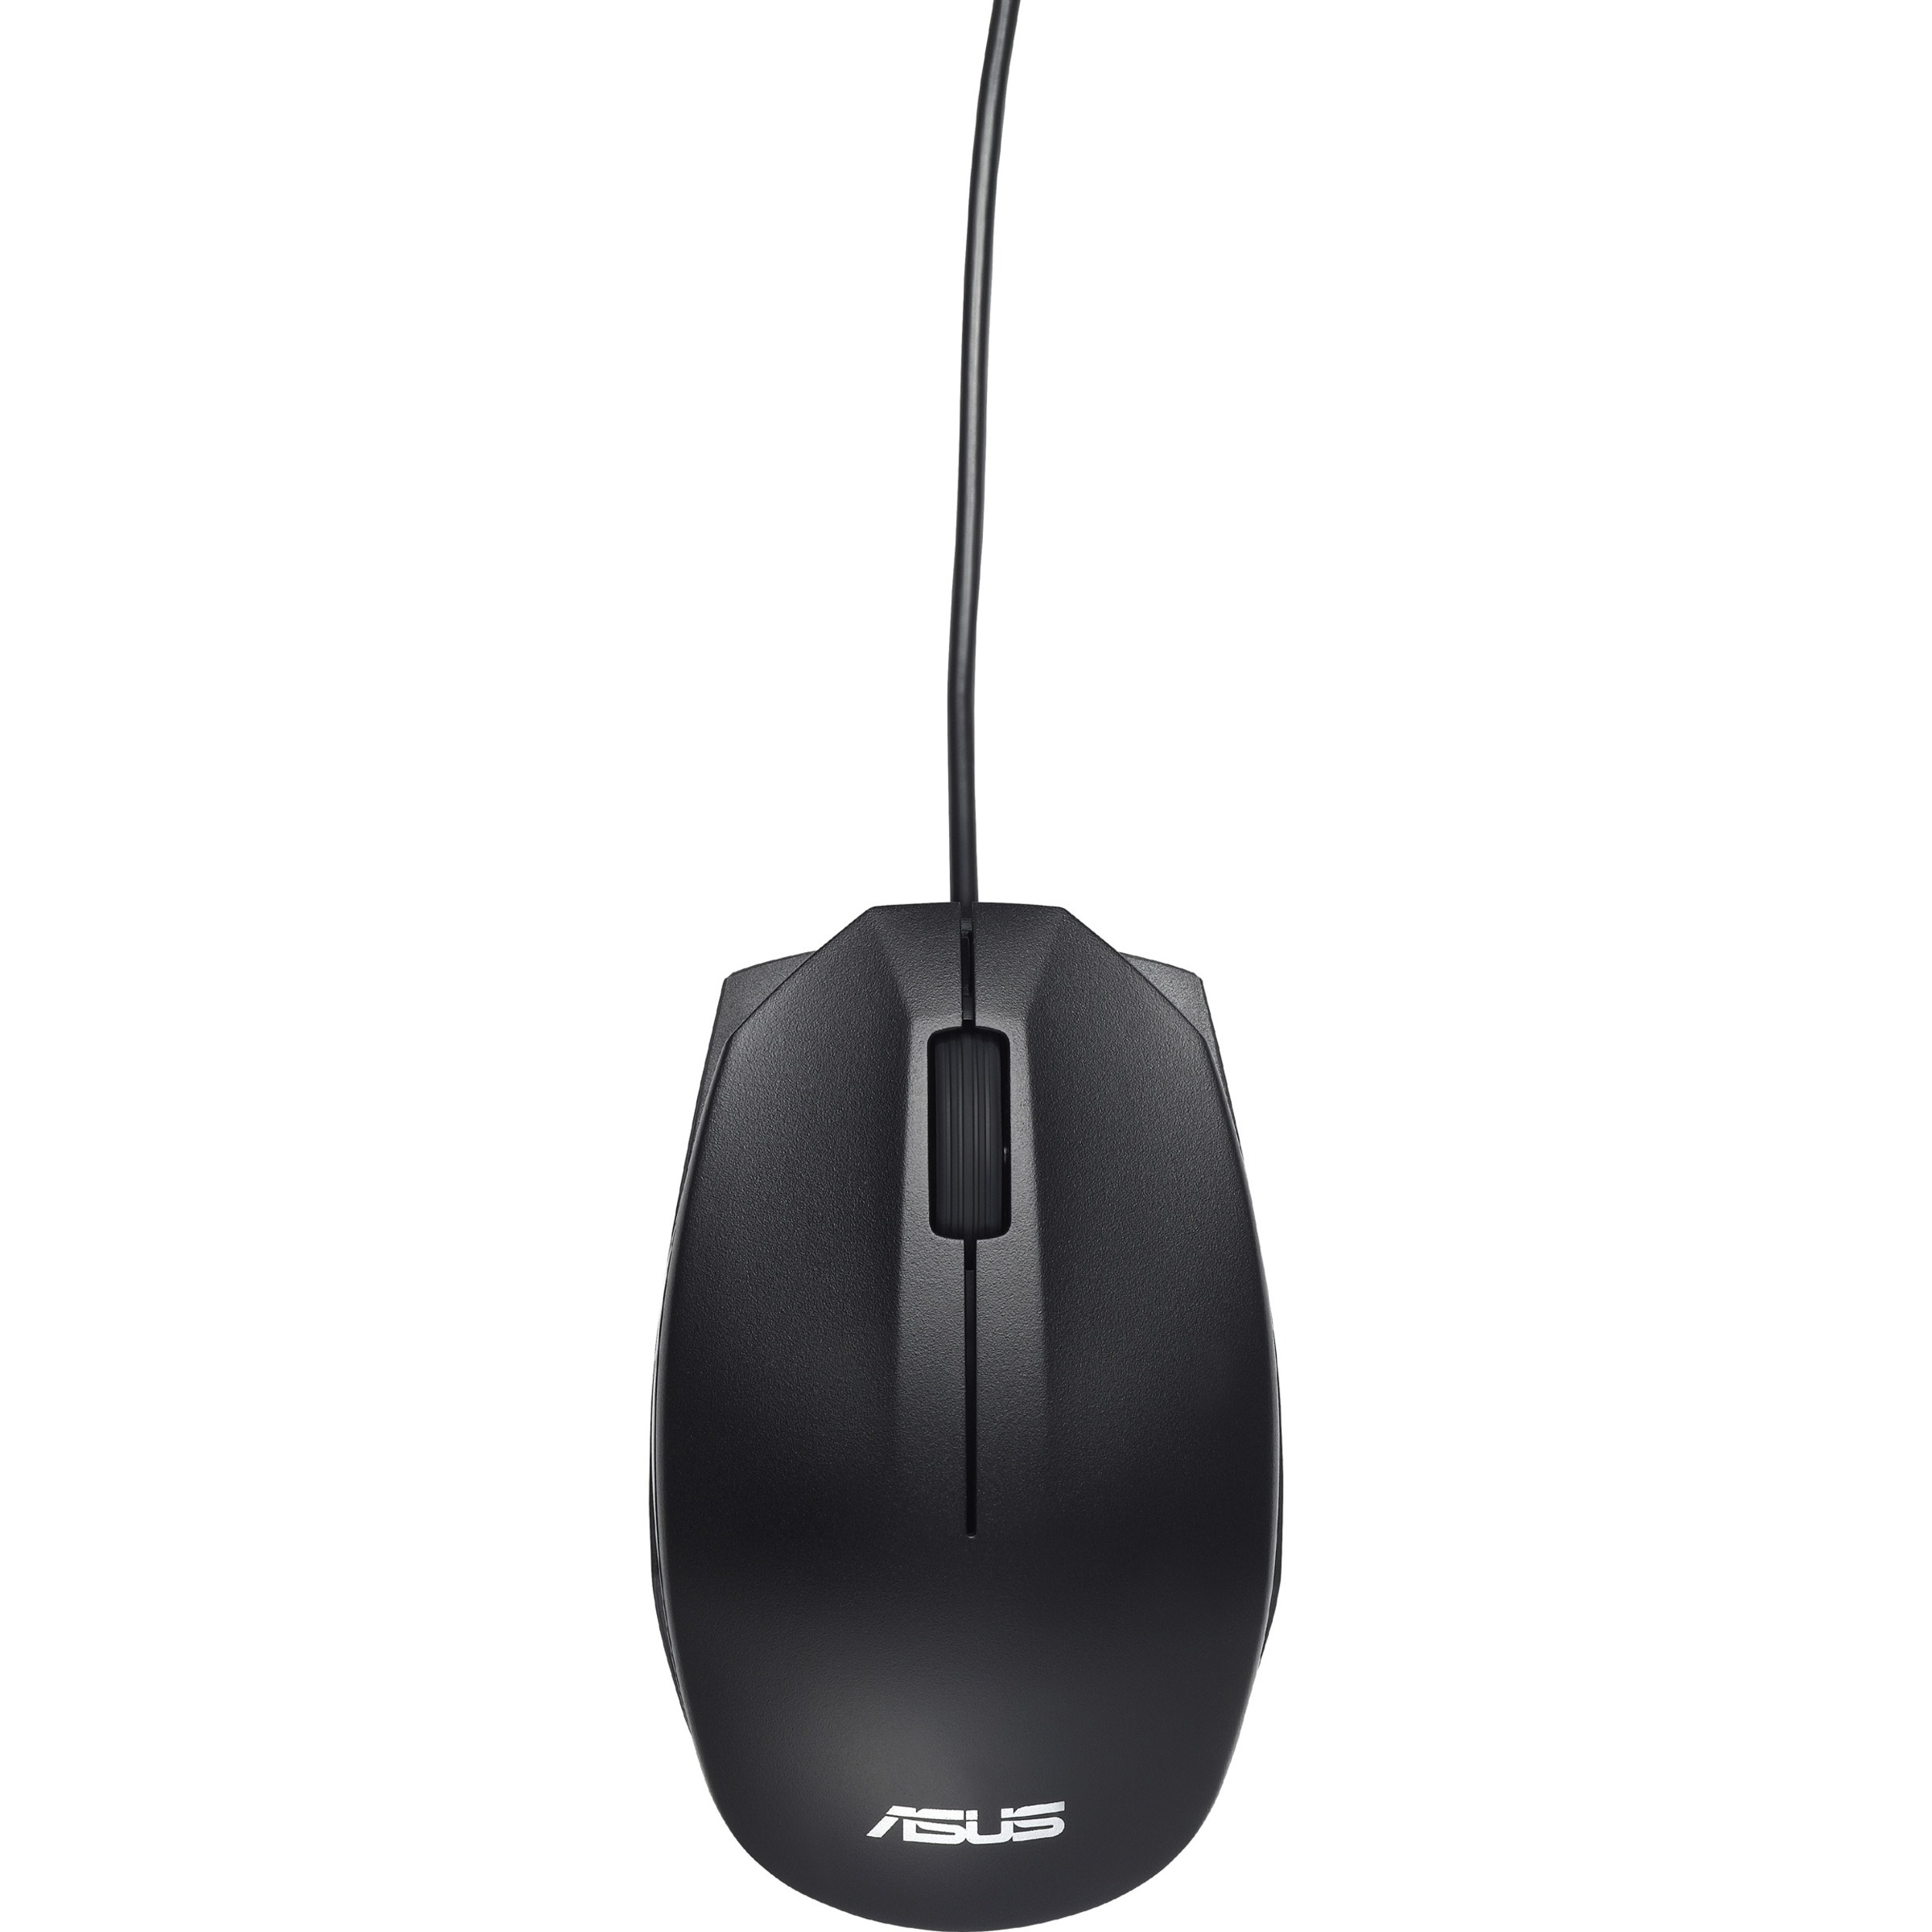 Asus UT280 Mouse - Optical - Cable - 3 Buttons - Black